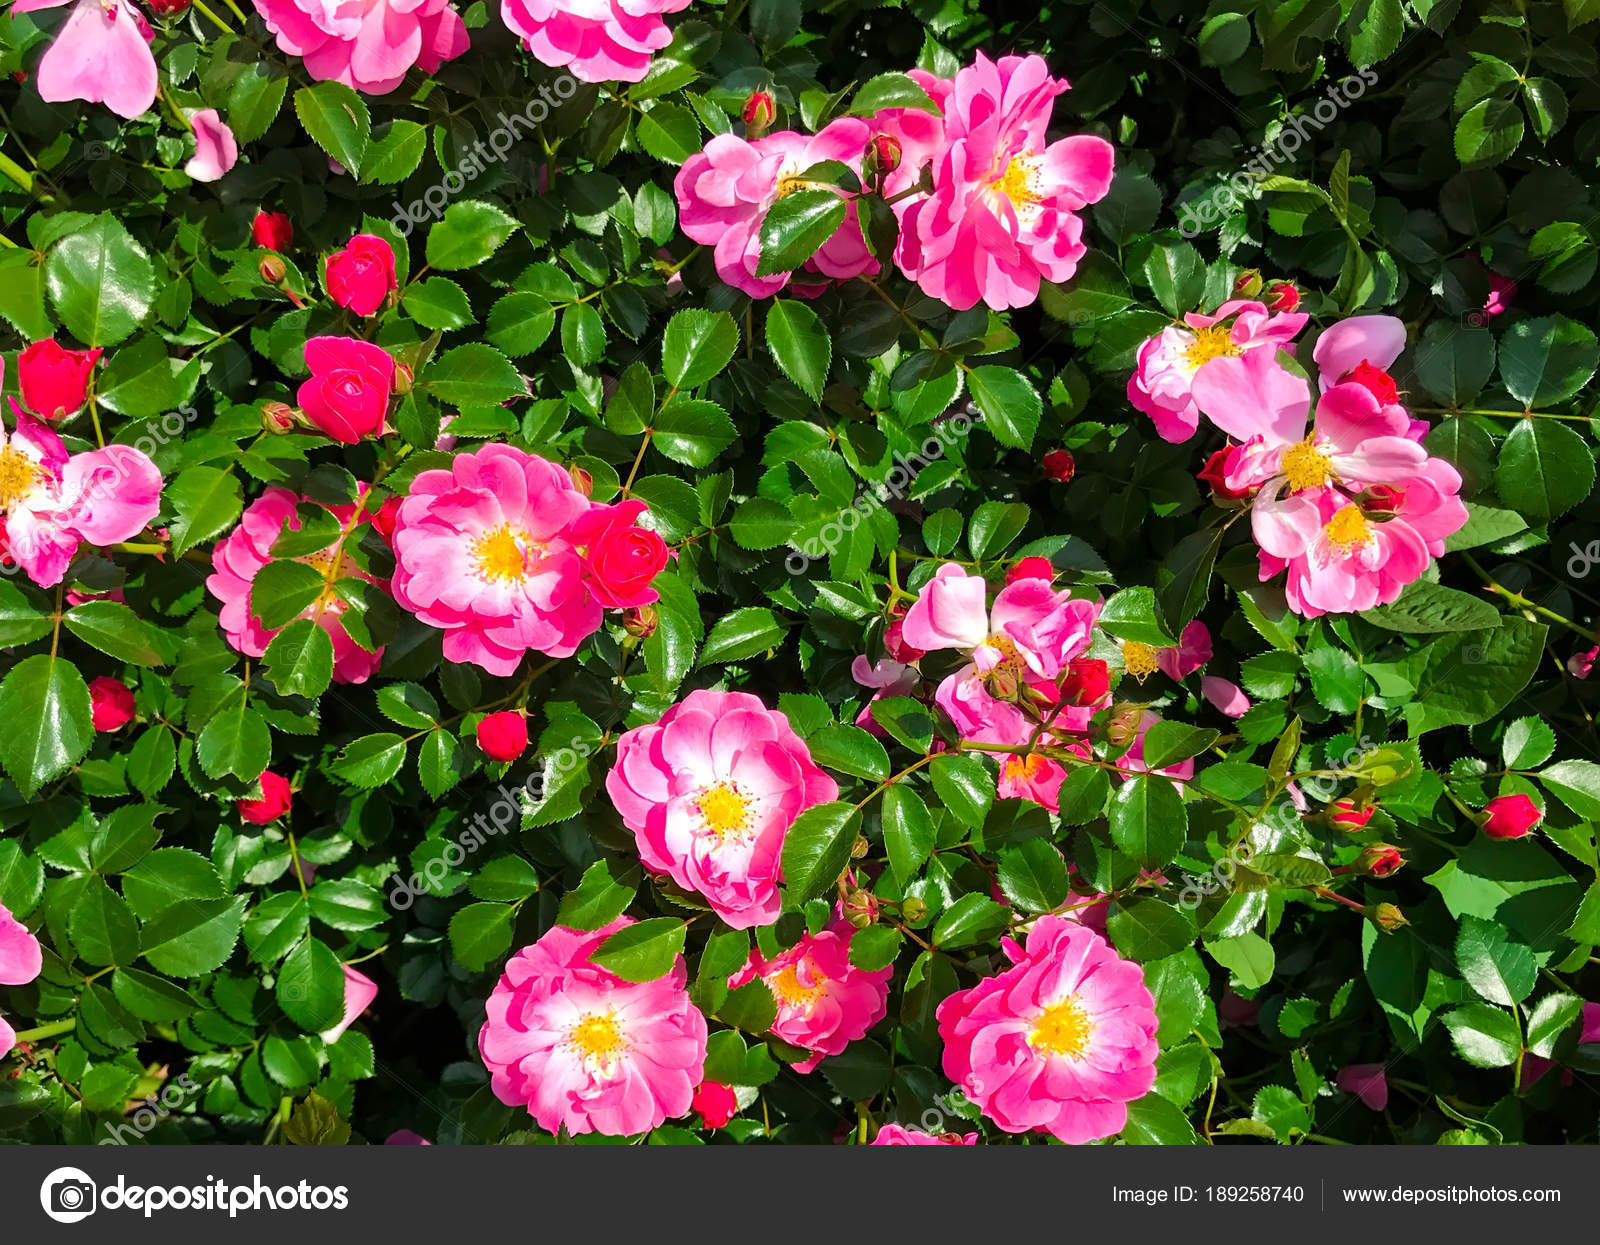 Background Of A Flowering Bush Of The Dog Rose With Bright Pink